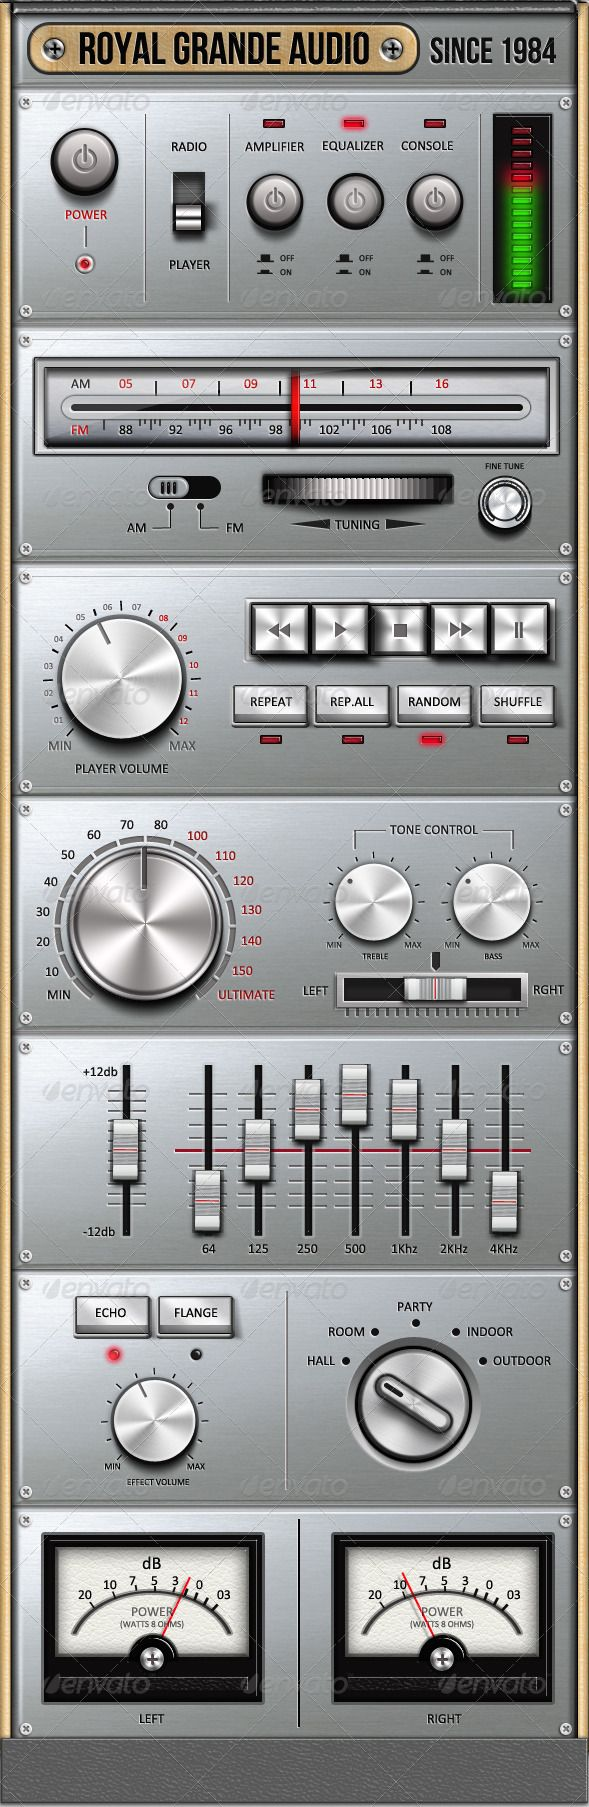 Royal Grande Very Old Audio Set UI - GraphicRiver Item for Sale